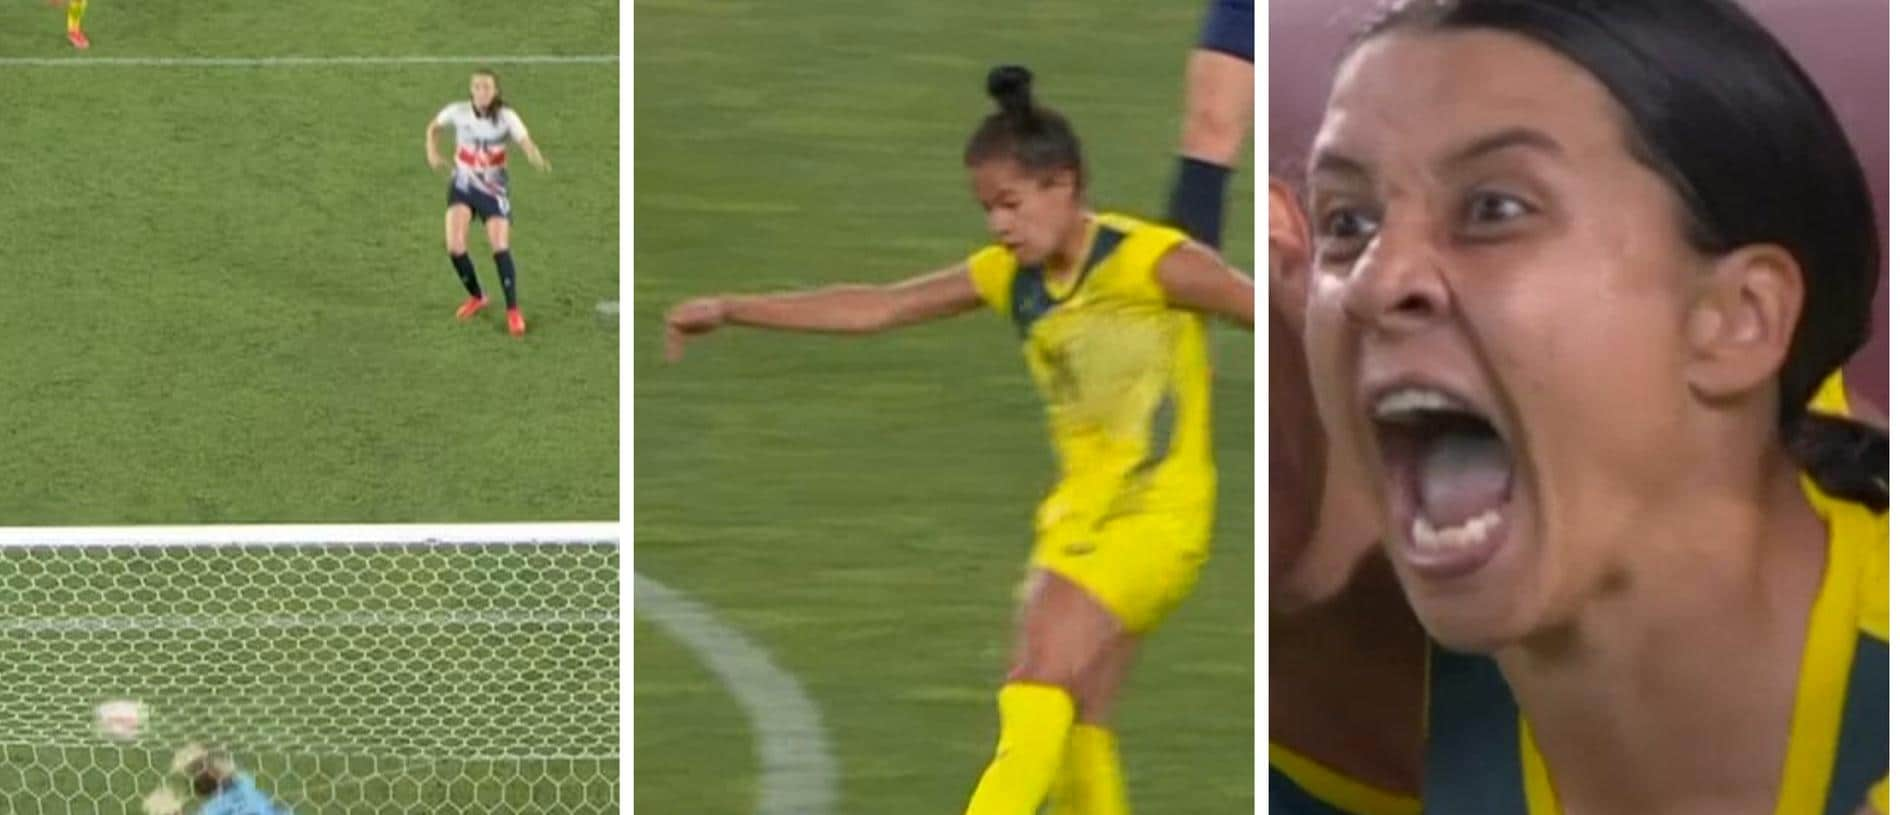 The Matildas trailed 1-2 in the 89th minute... and then went NUTS.